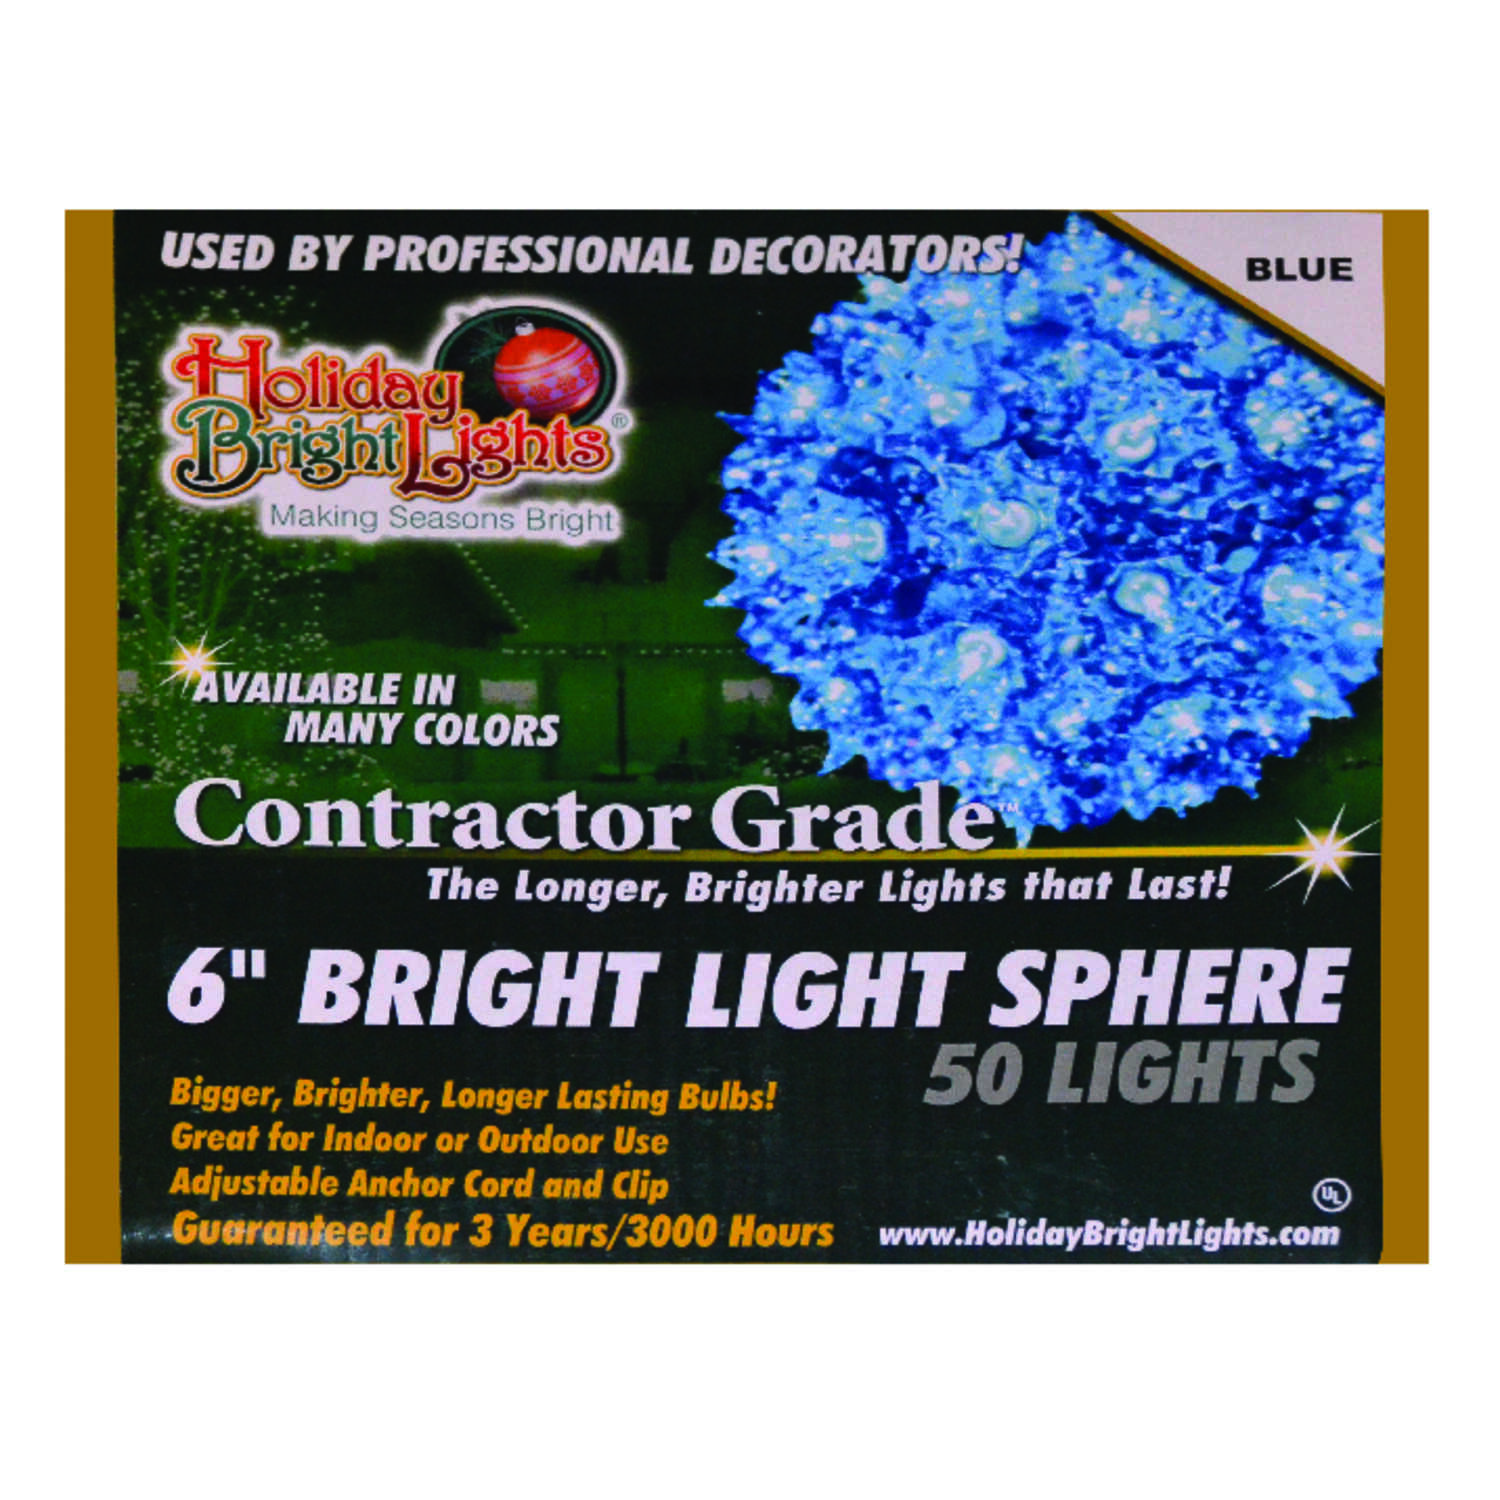 Holiday Bright Lights  Contractor  Incandescent  Sphere Light  Blue  12 ft. 50 lights